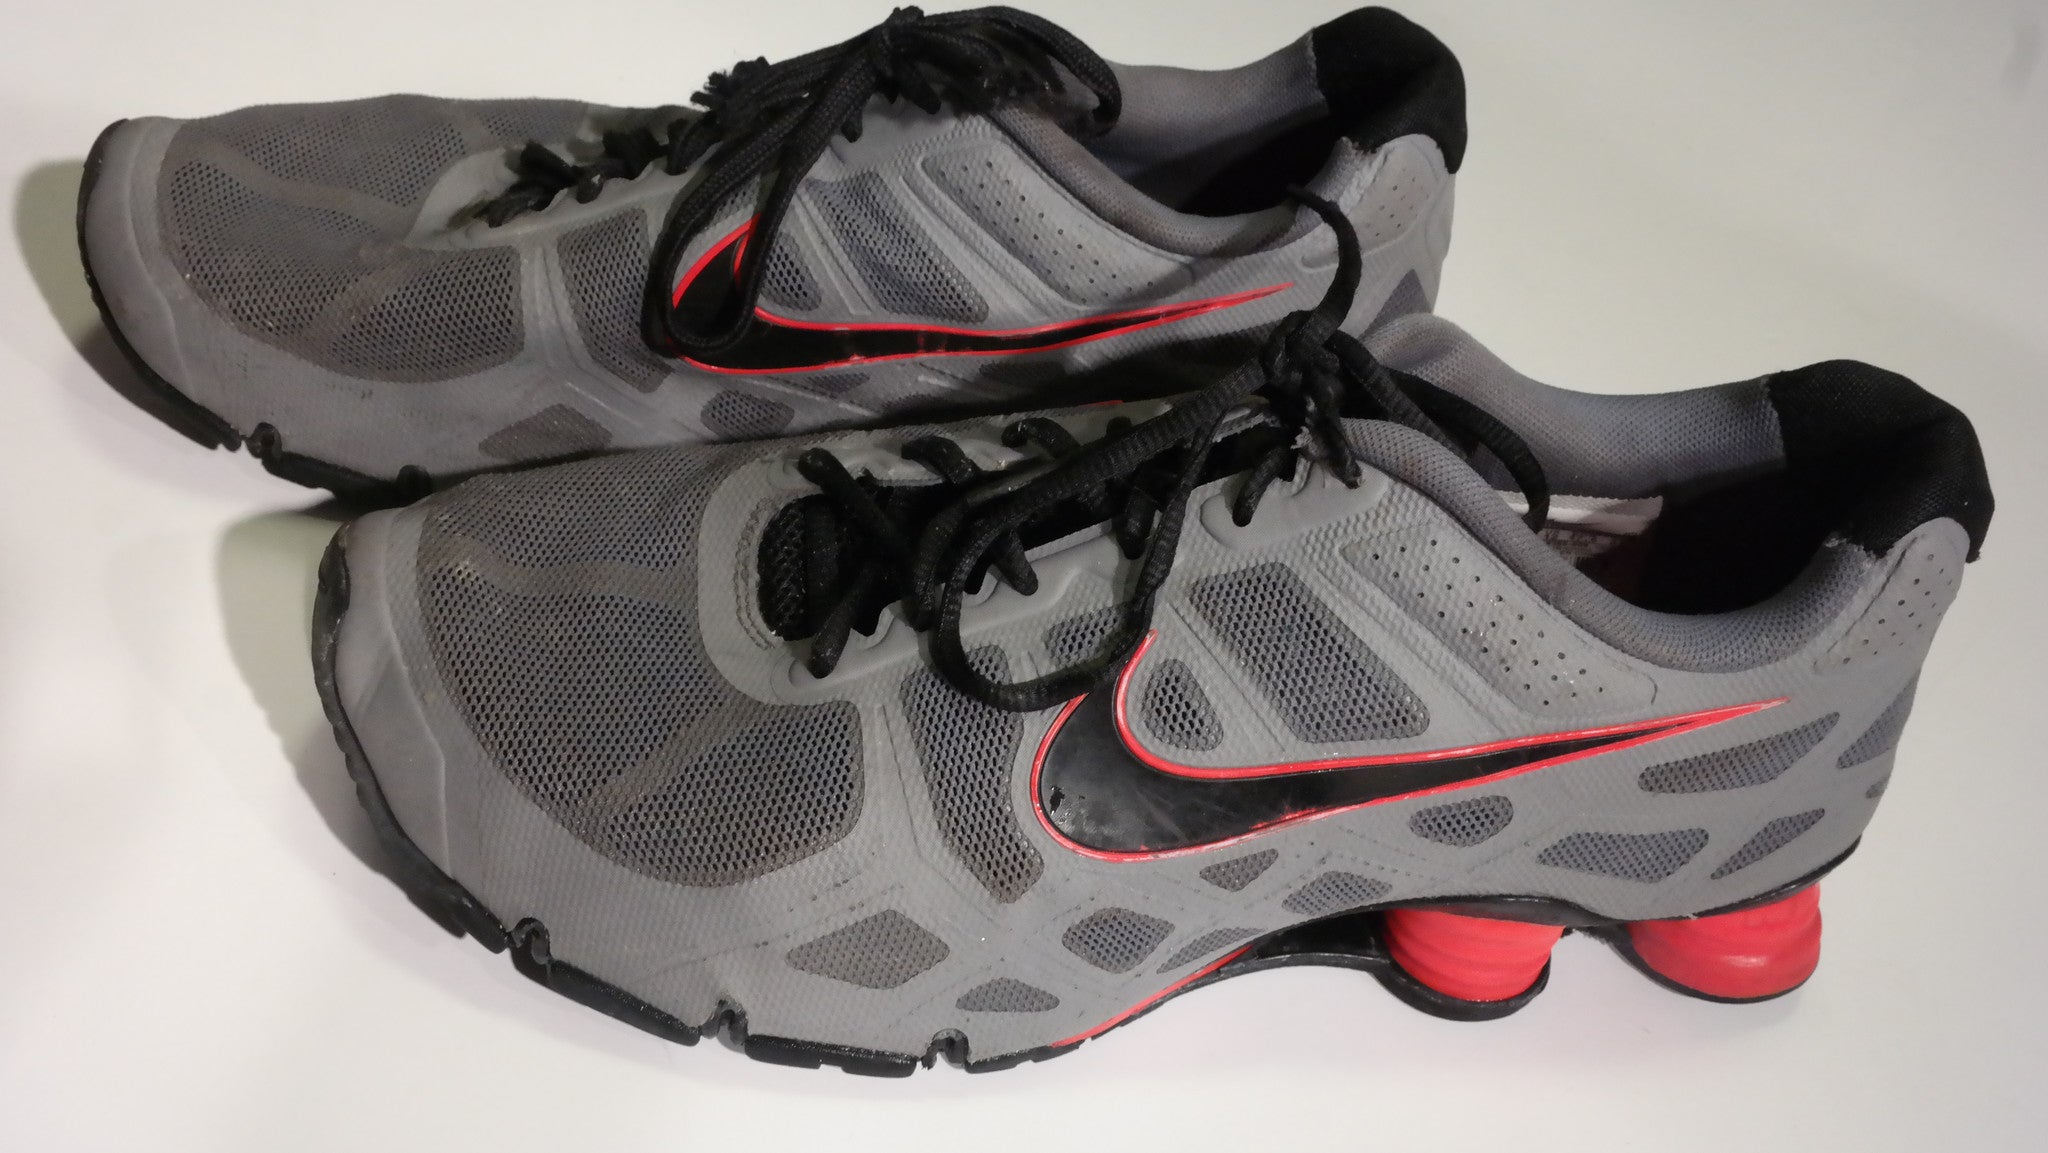 68997b5449d5 ... reduced wholesale nike shox tl3 abd1d 764e1